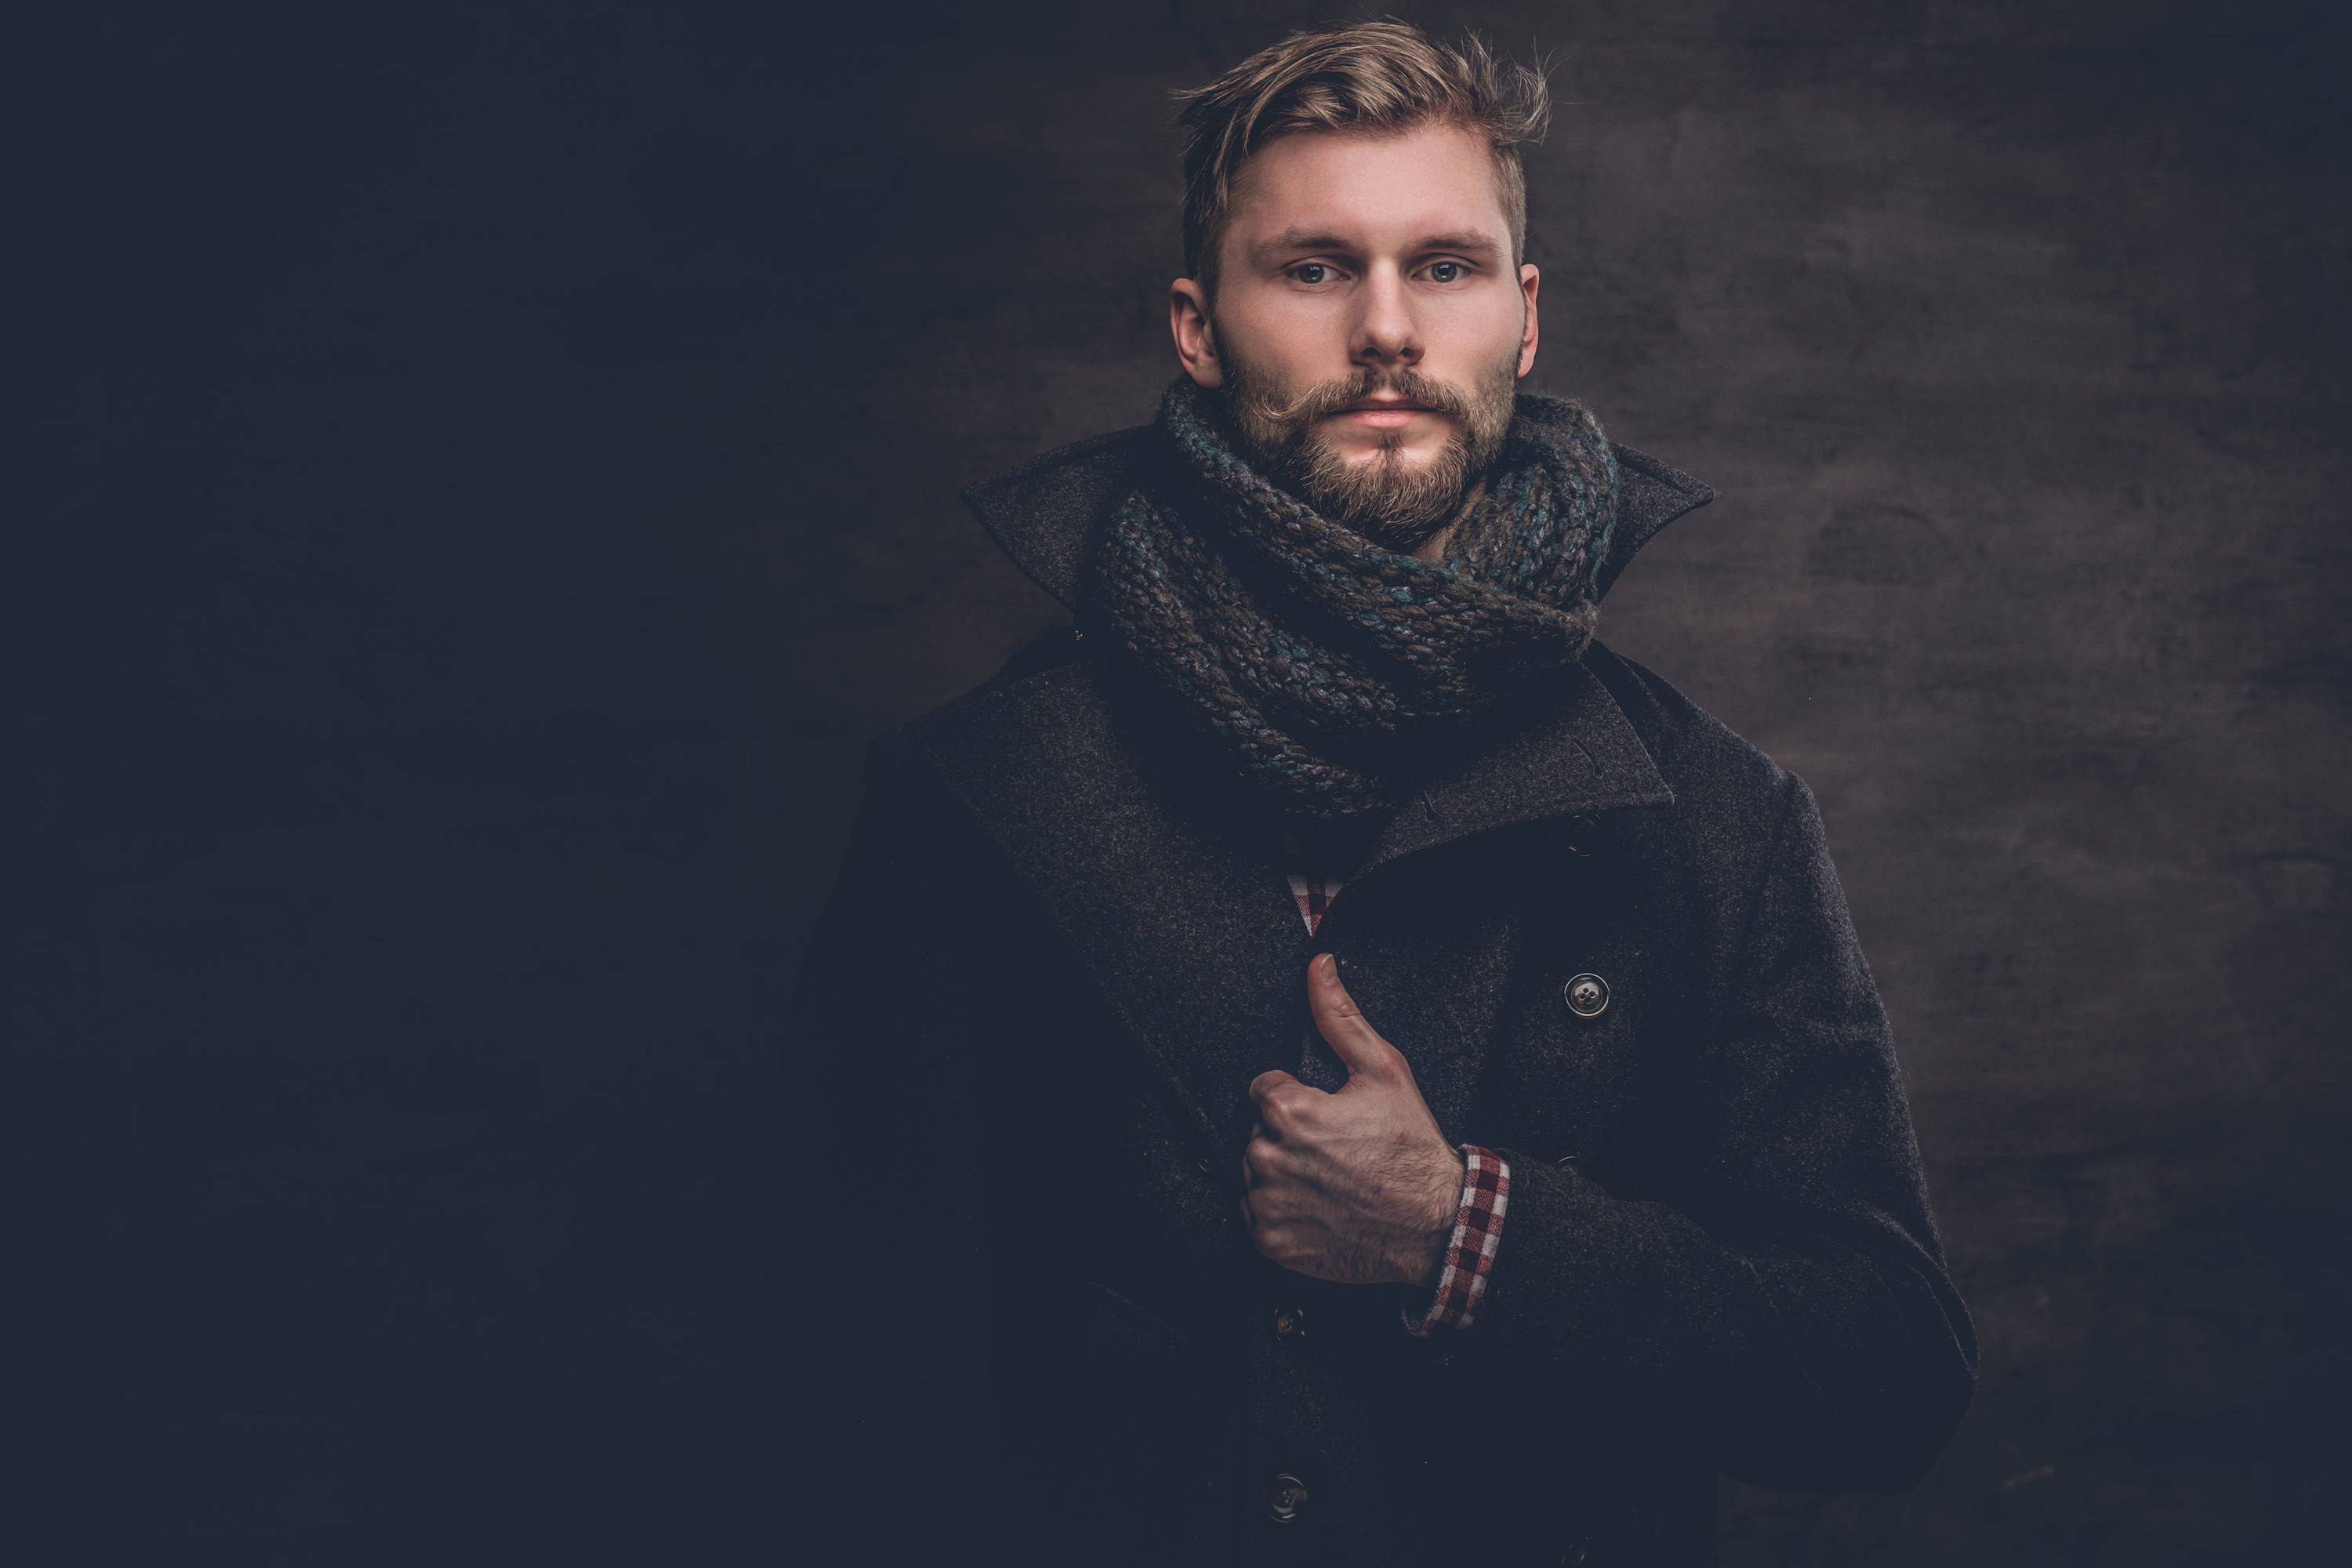 Well dressed young man layers boiled wool coat with chunky scarf for a hip, homespun style